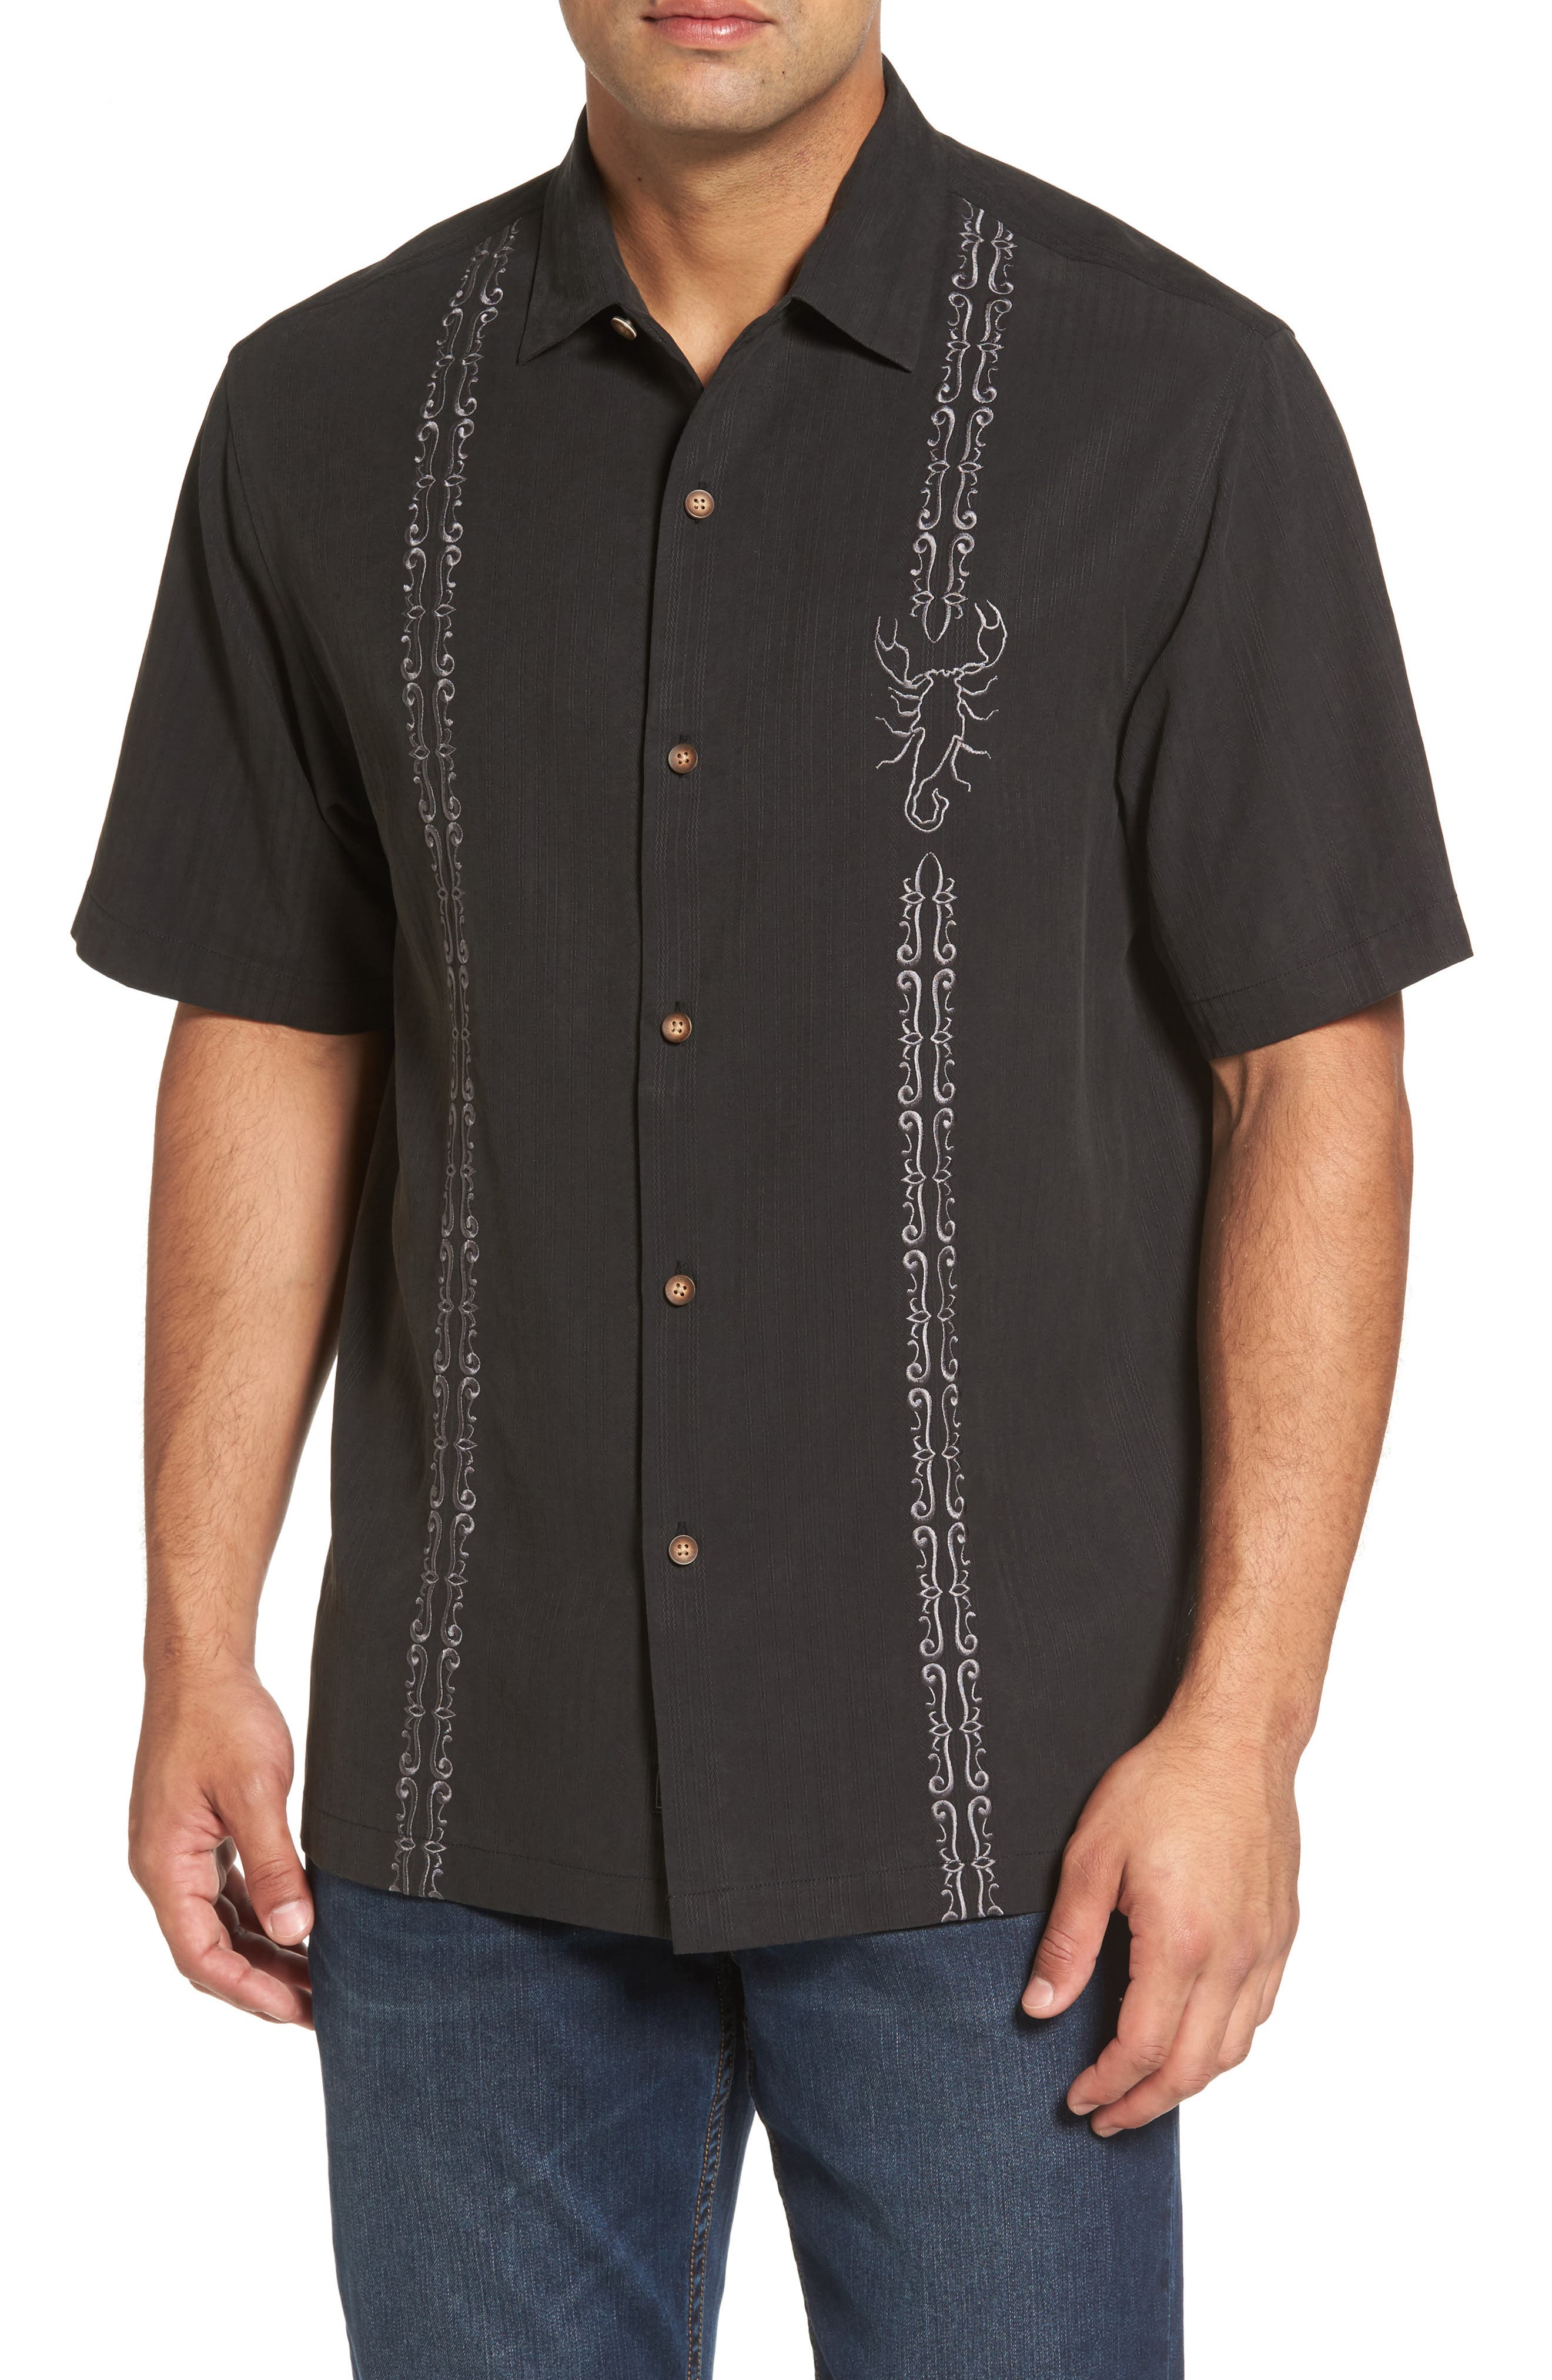 Drink Your Poison Embroidered Silk Woven Shirt,                             Main thumbnail 1, color,                             001